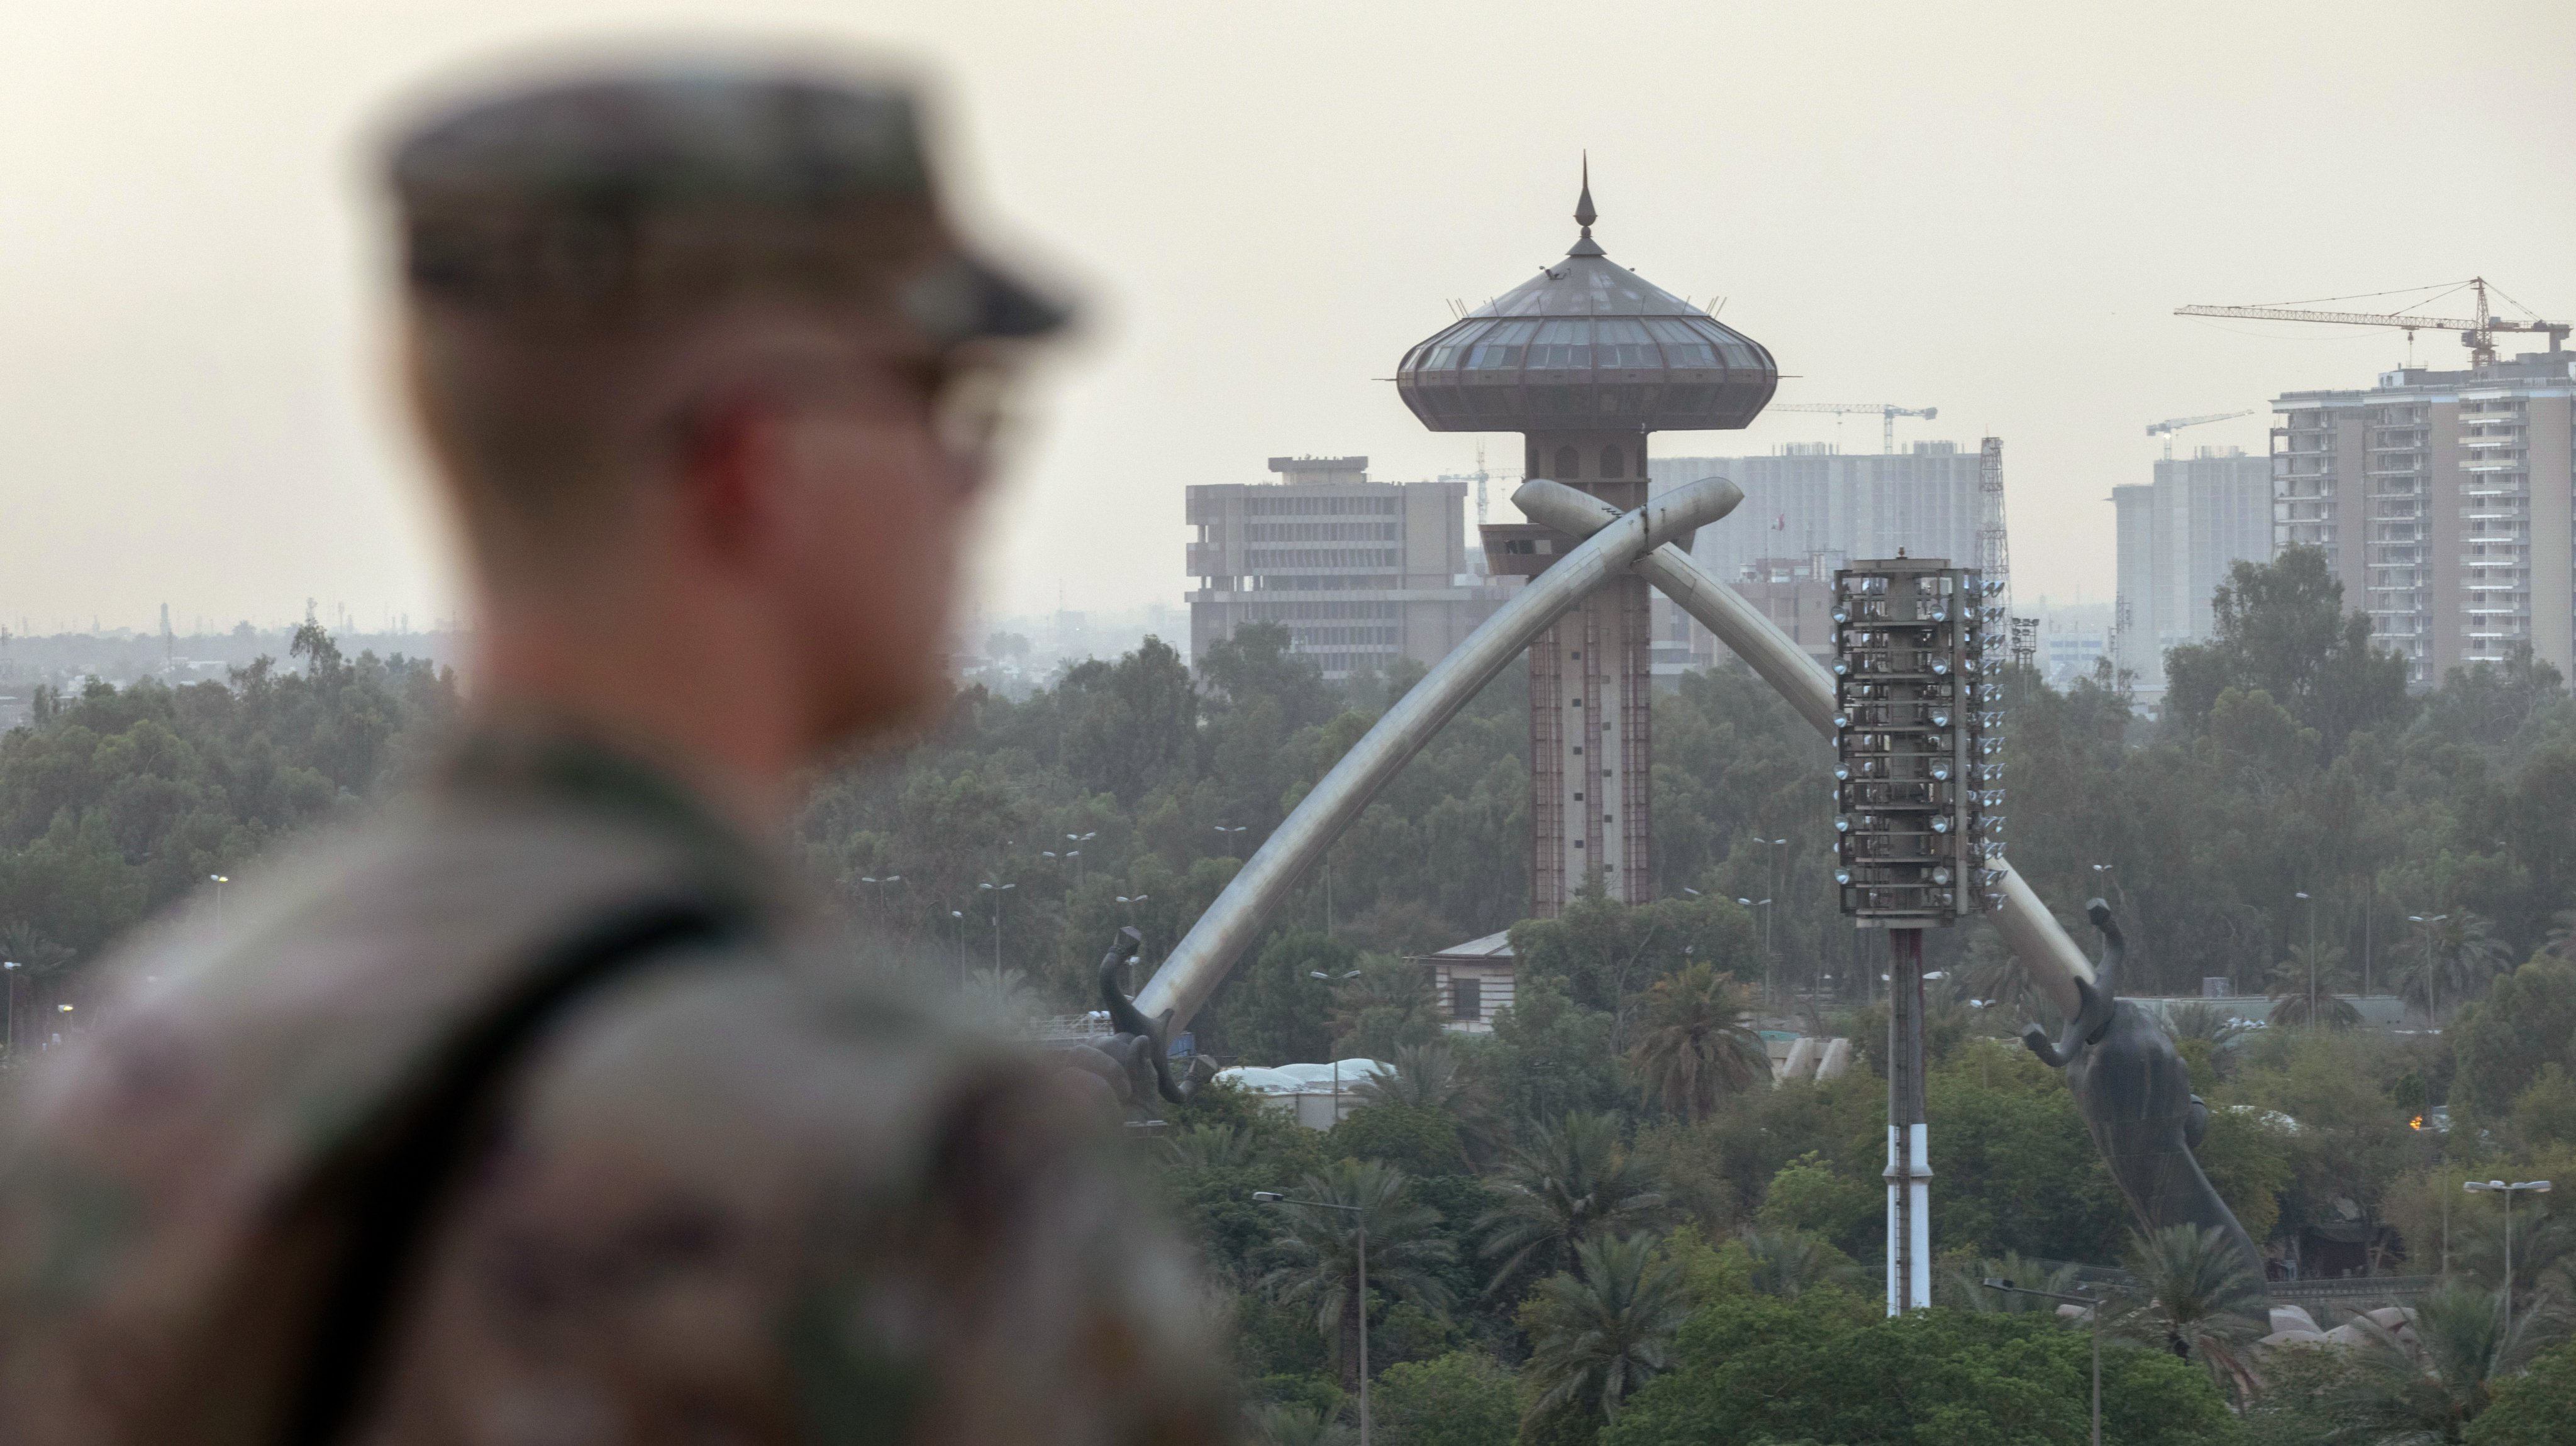 Coalition And Iraqi Forces Occupy Baghdad's International Zone